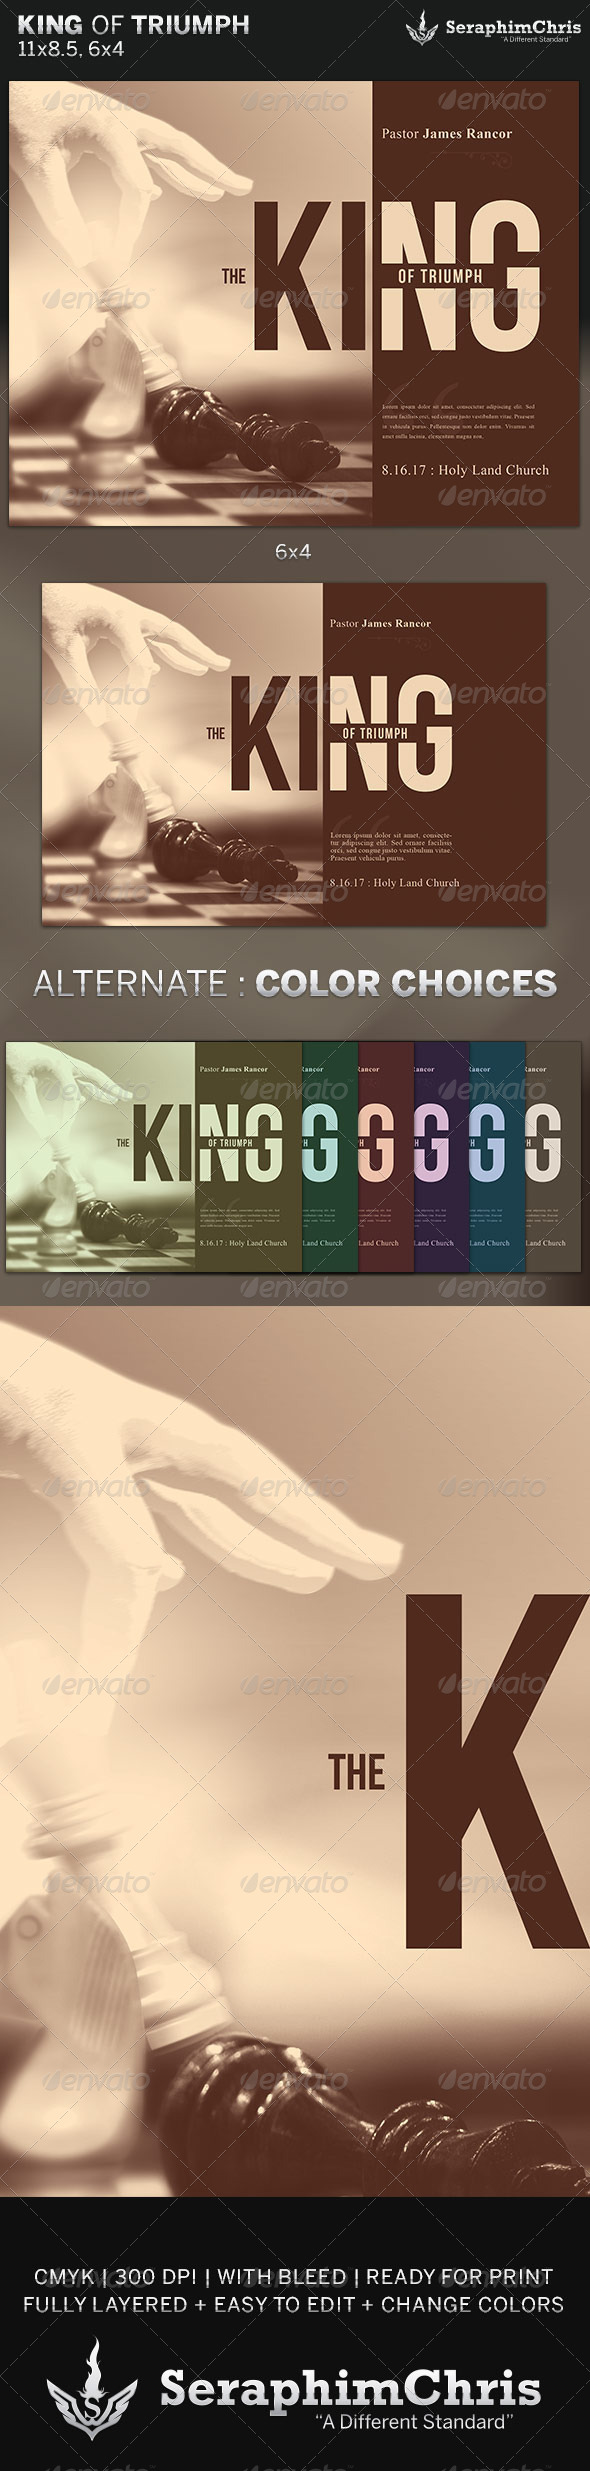 GraphicRiver King of Triumph Church Flyer Template 6475568